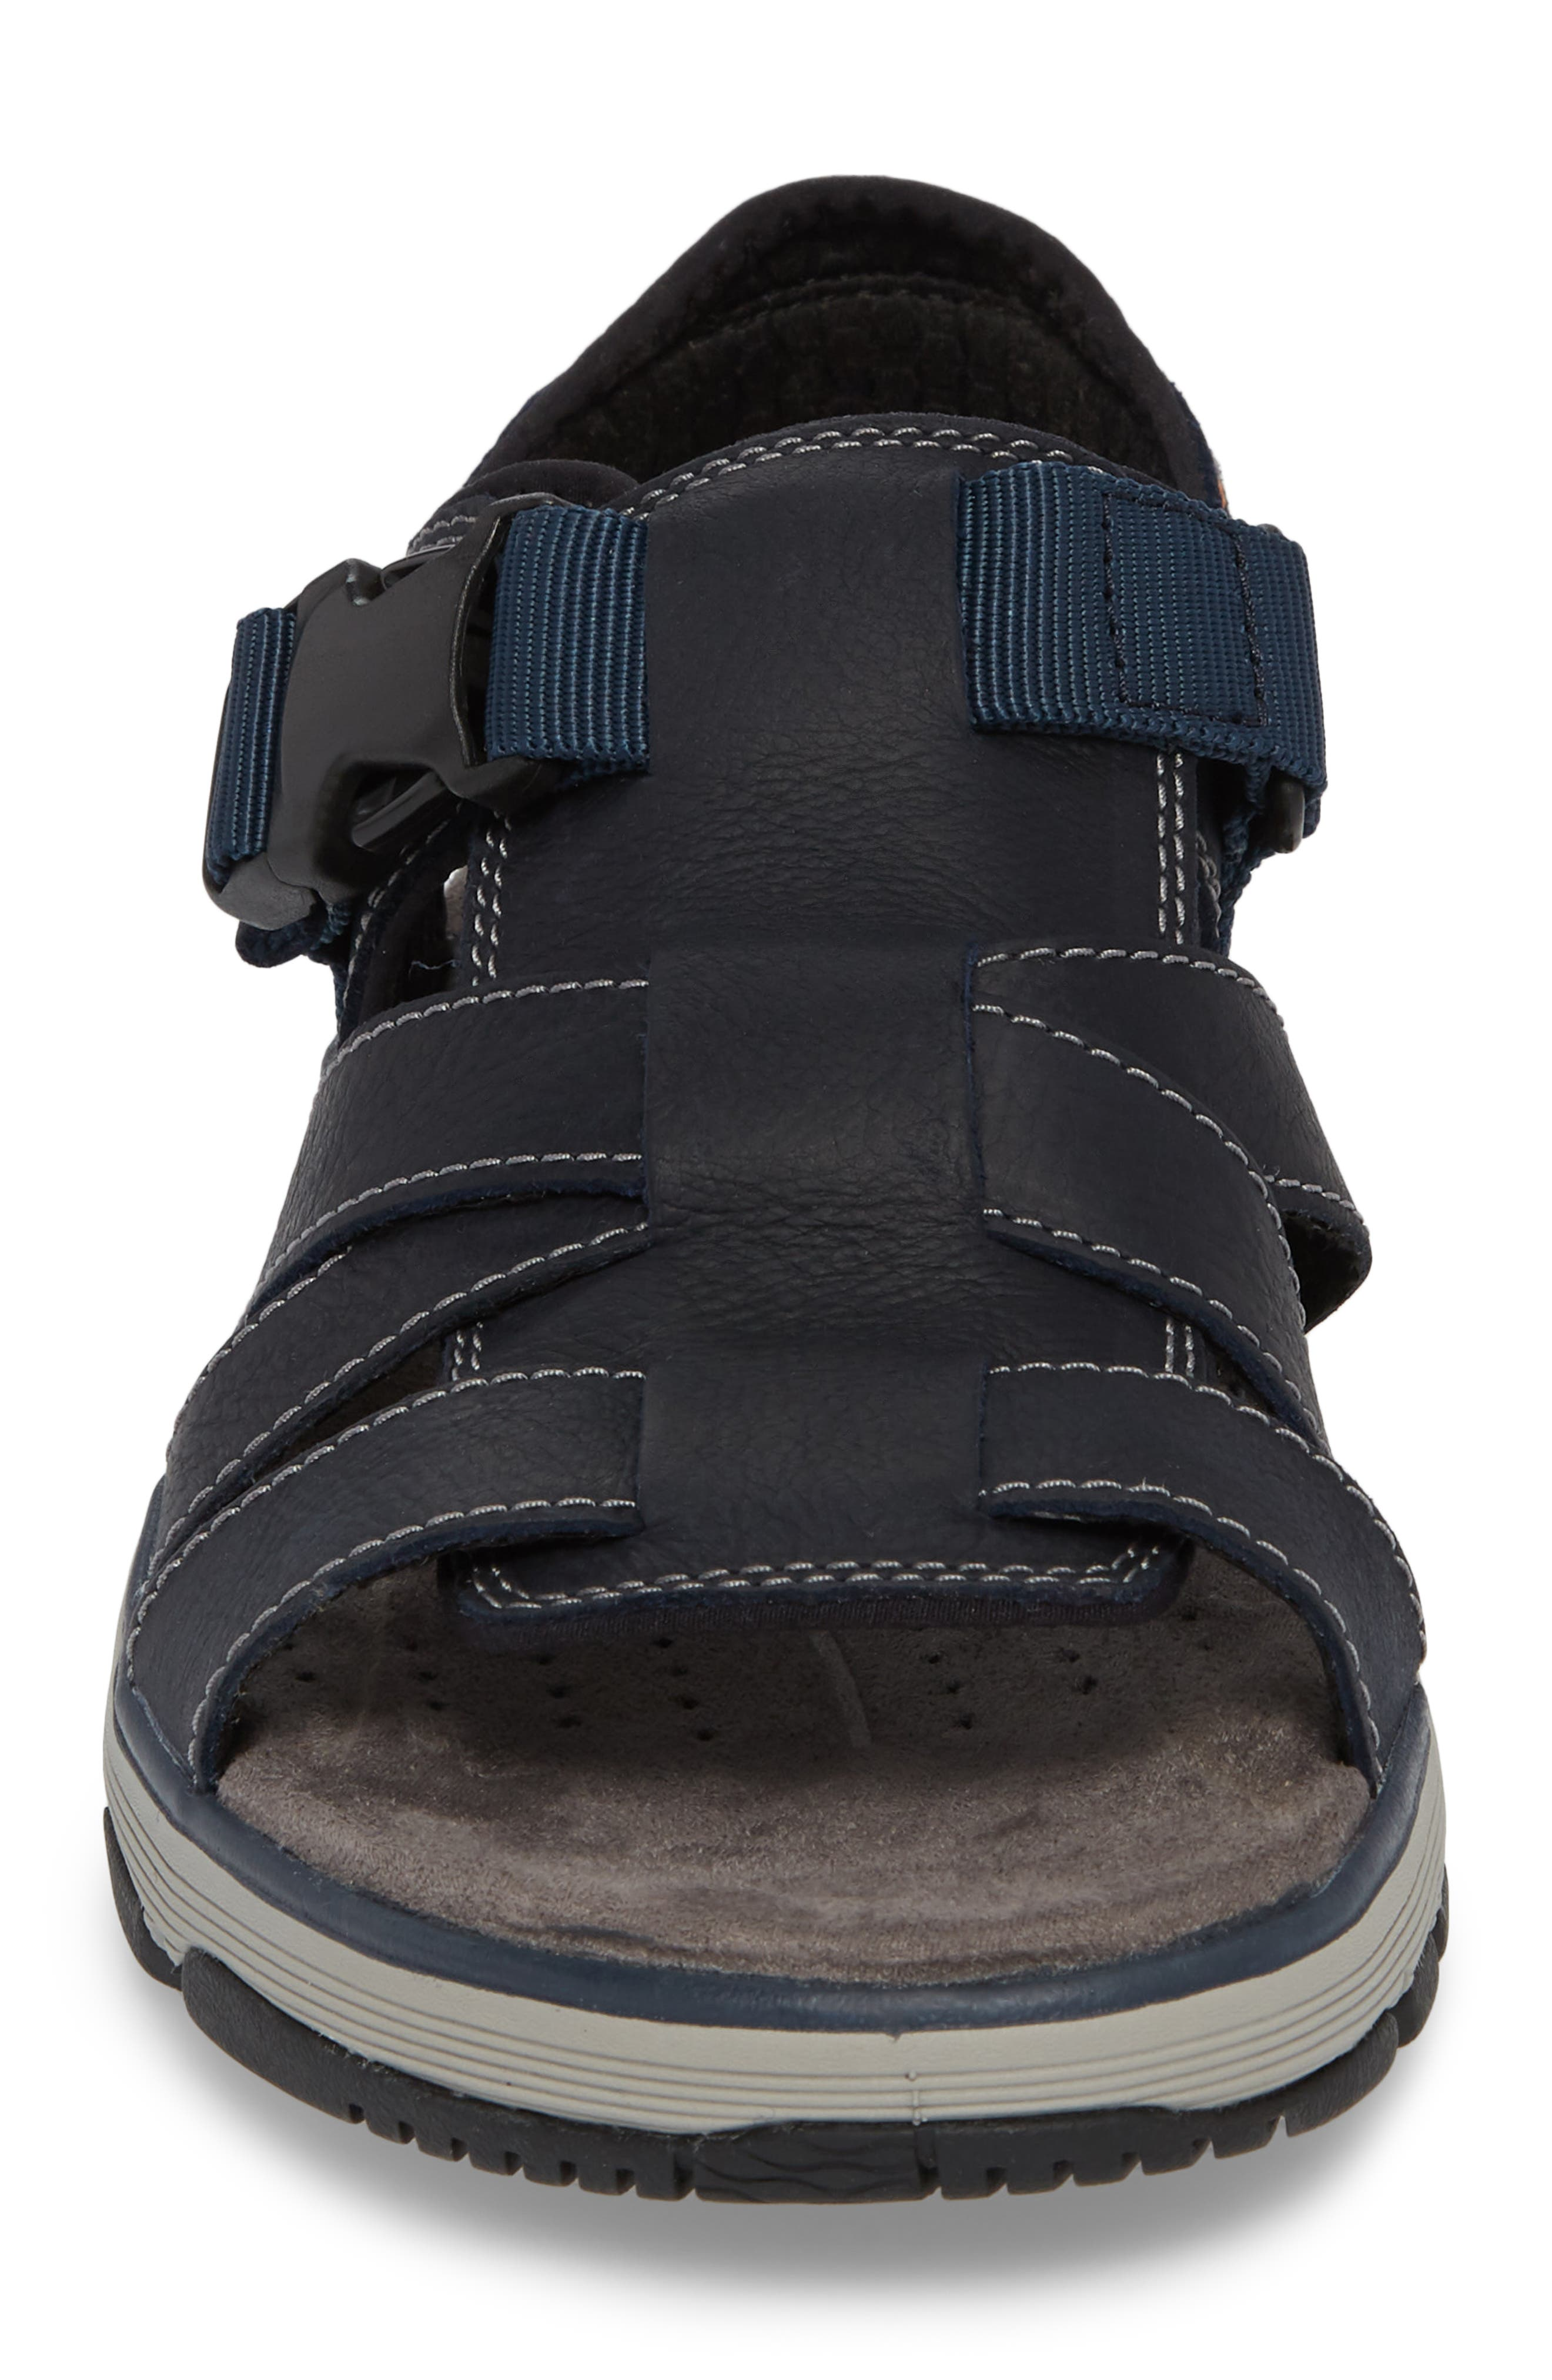 Clarks<sup>®</sup> Untrek Cove Fisherman Sandal,                             Alternate thumbnail 8, color,